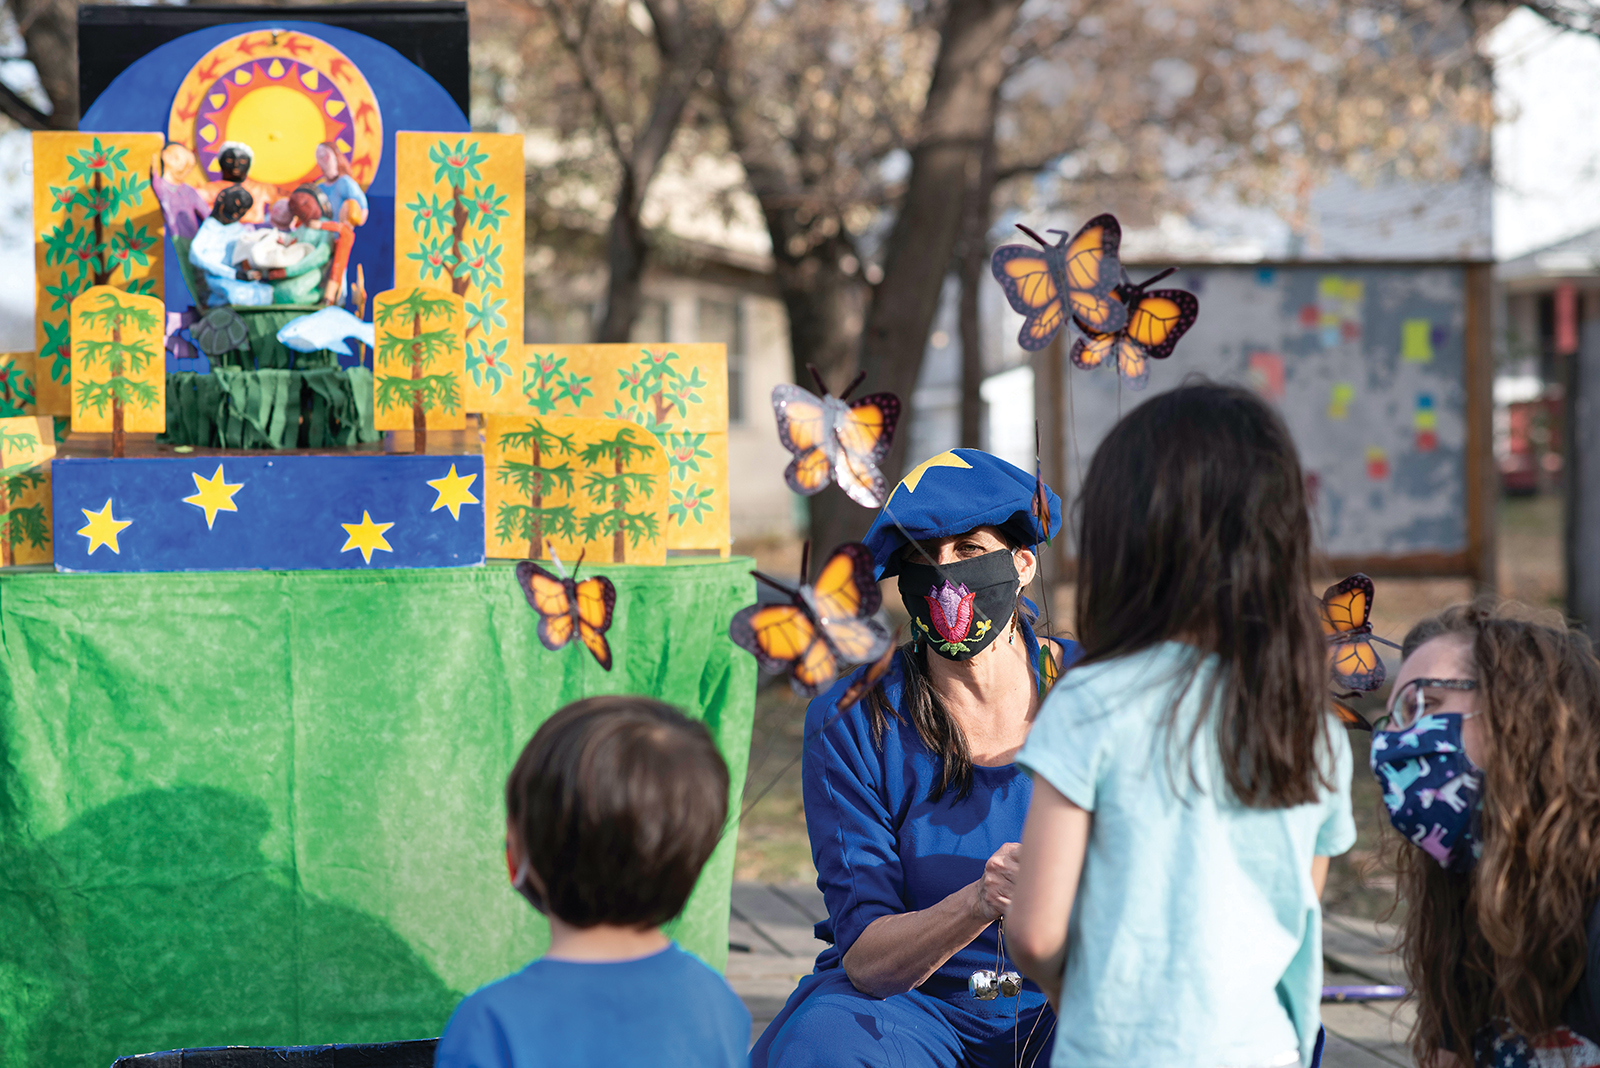 """Puppeteer Esther Ouray performs in Minneapolis for """"Artists Respond: Combating Social Isolation,"""" an event by Springboard for the Arts"""